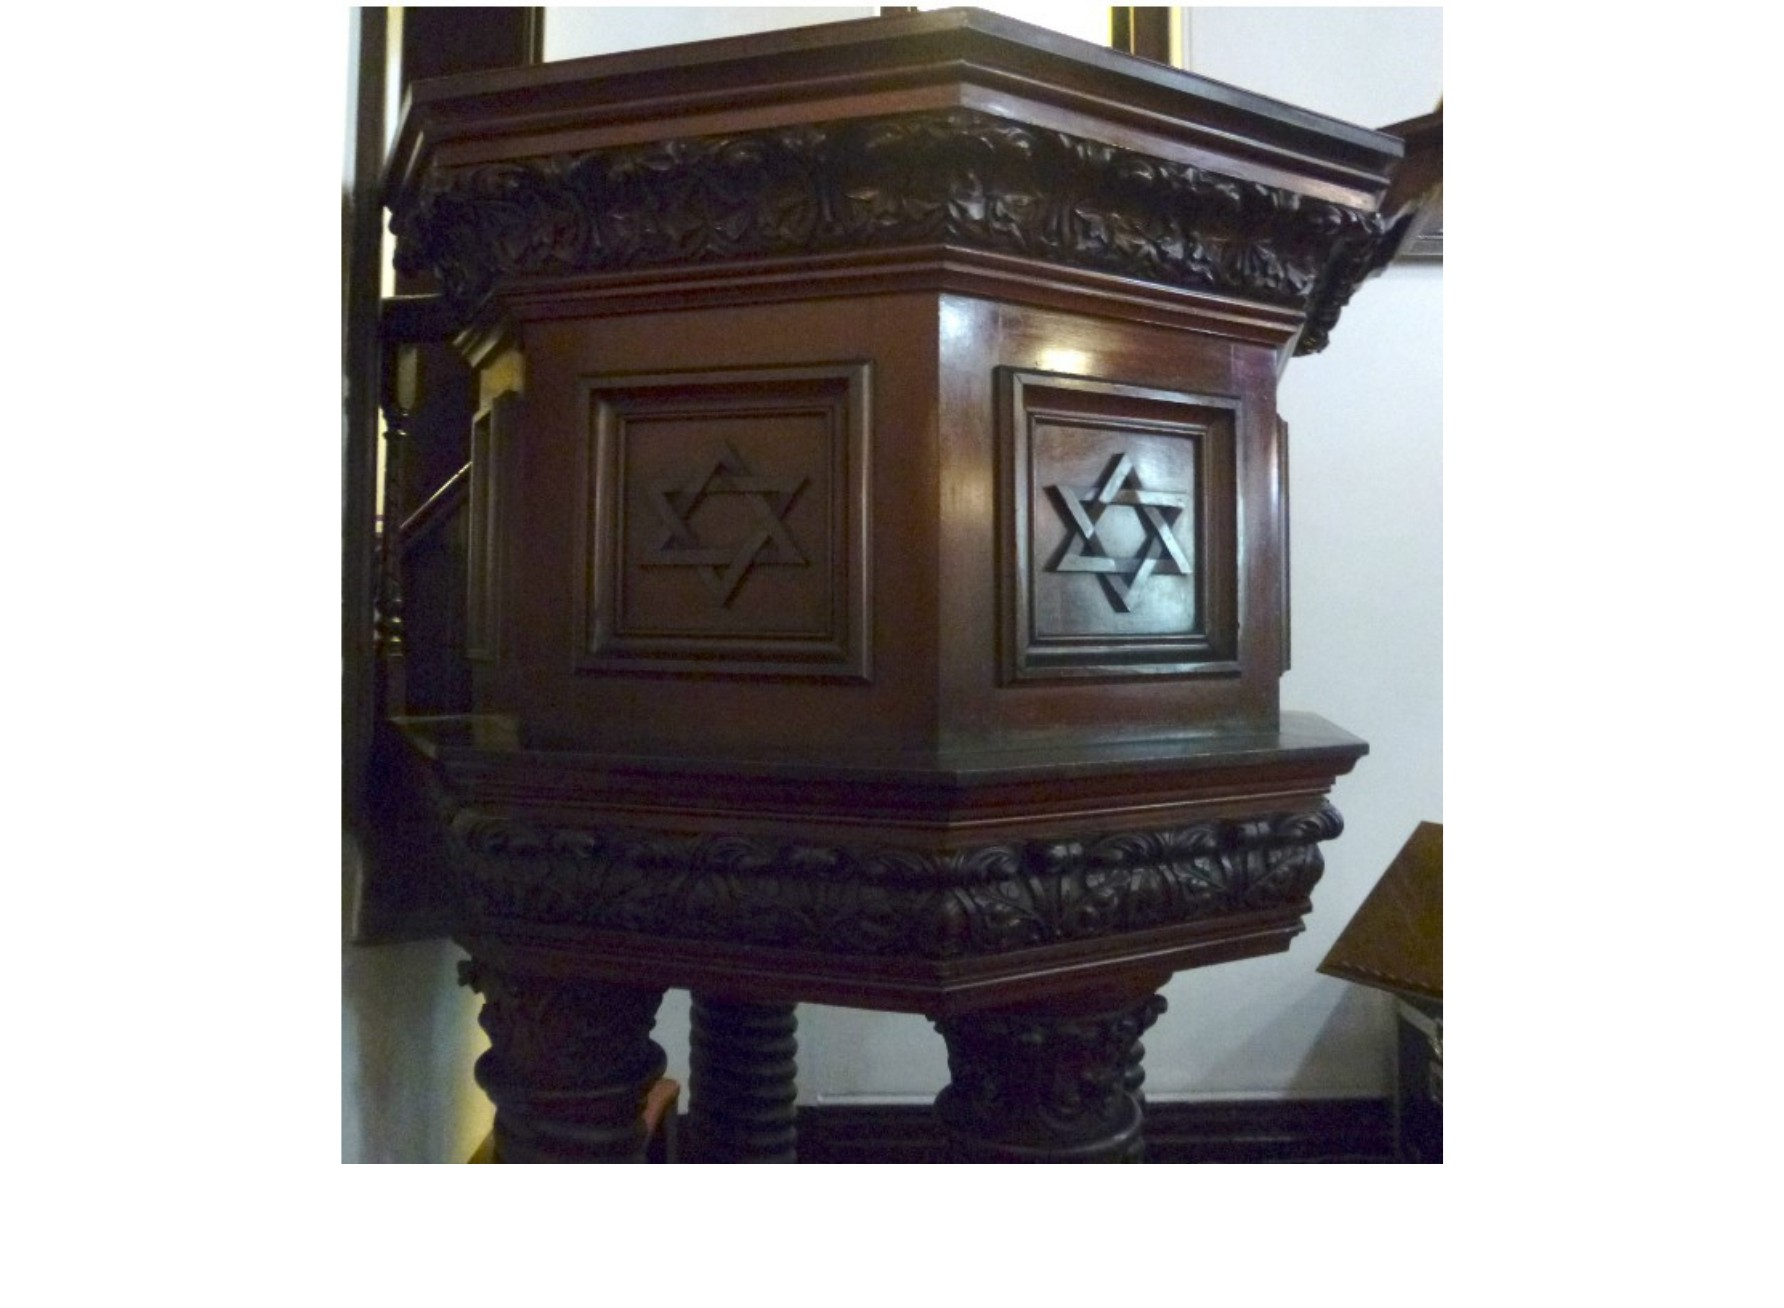 "<span class=""slider_description"">2 of 7. The church pulpit could have its origin in the York Street Synagogue, 1844-1878.</span>"